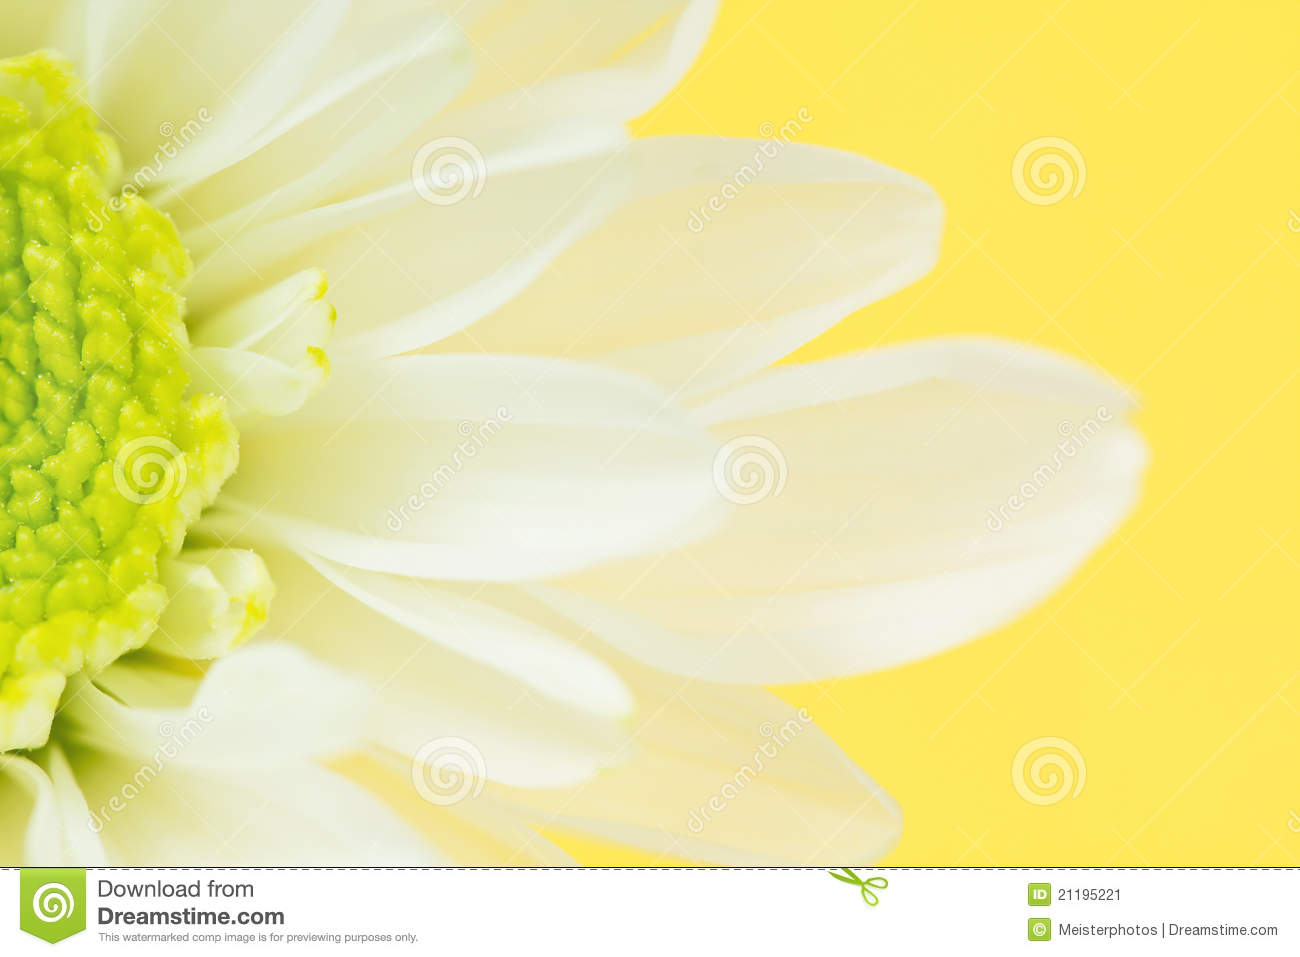 Close-up of White Daisy Flower on Yellow